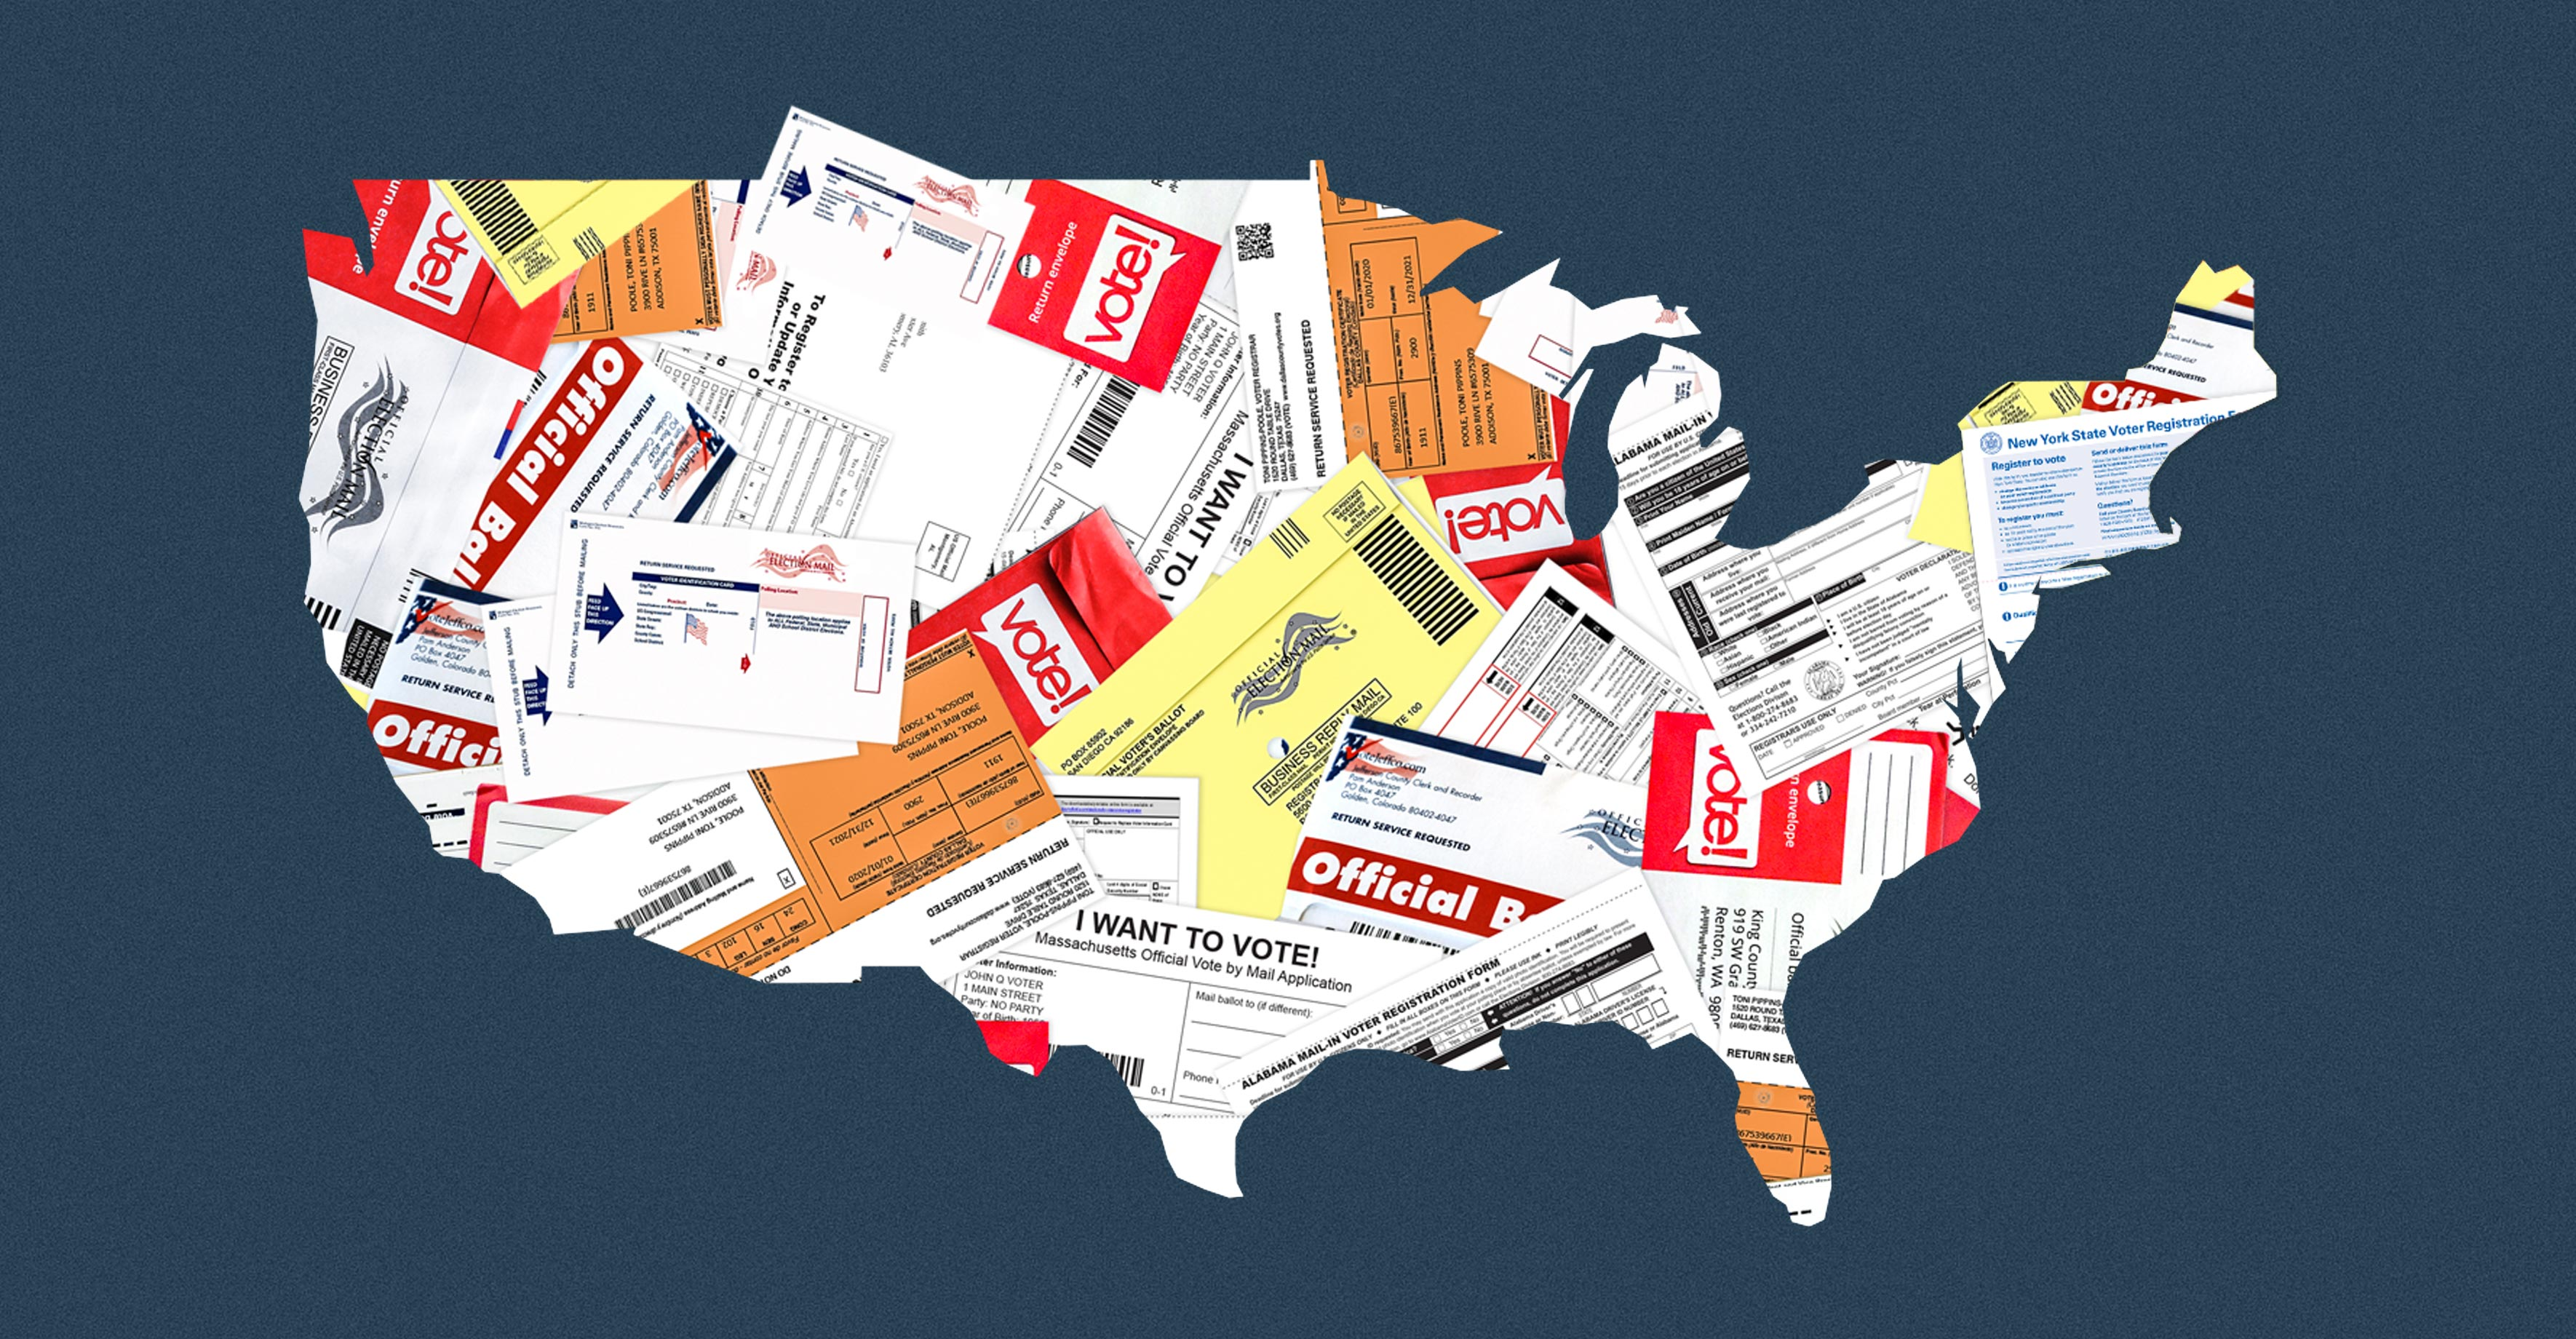 An outline of the U.S.A. covered in ballots and ballot applications.